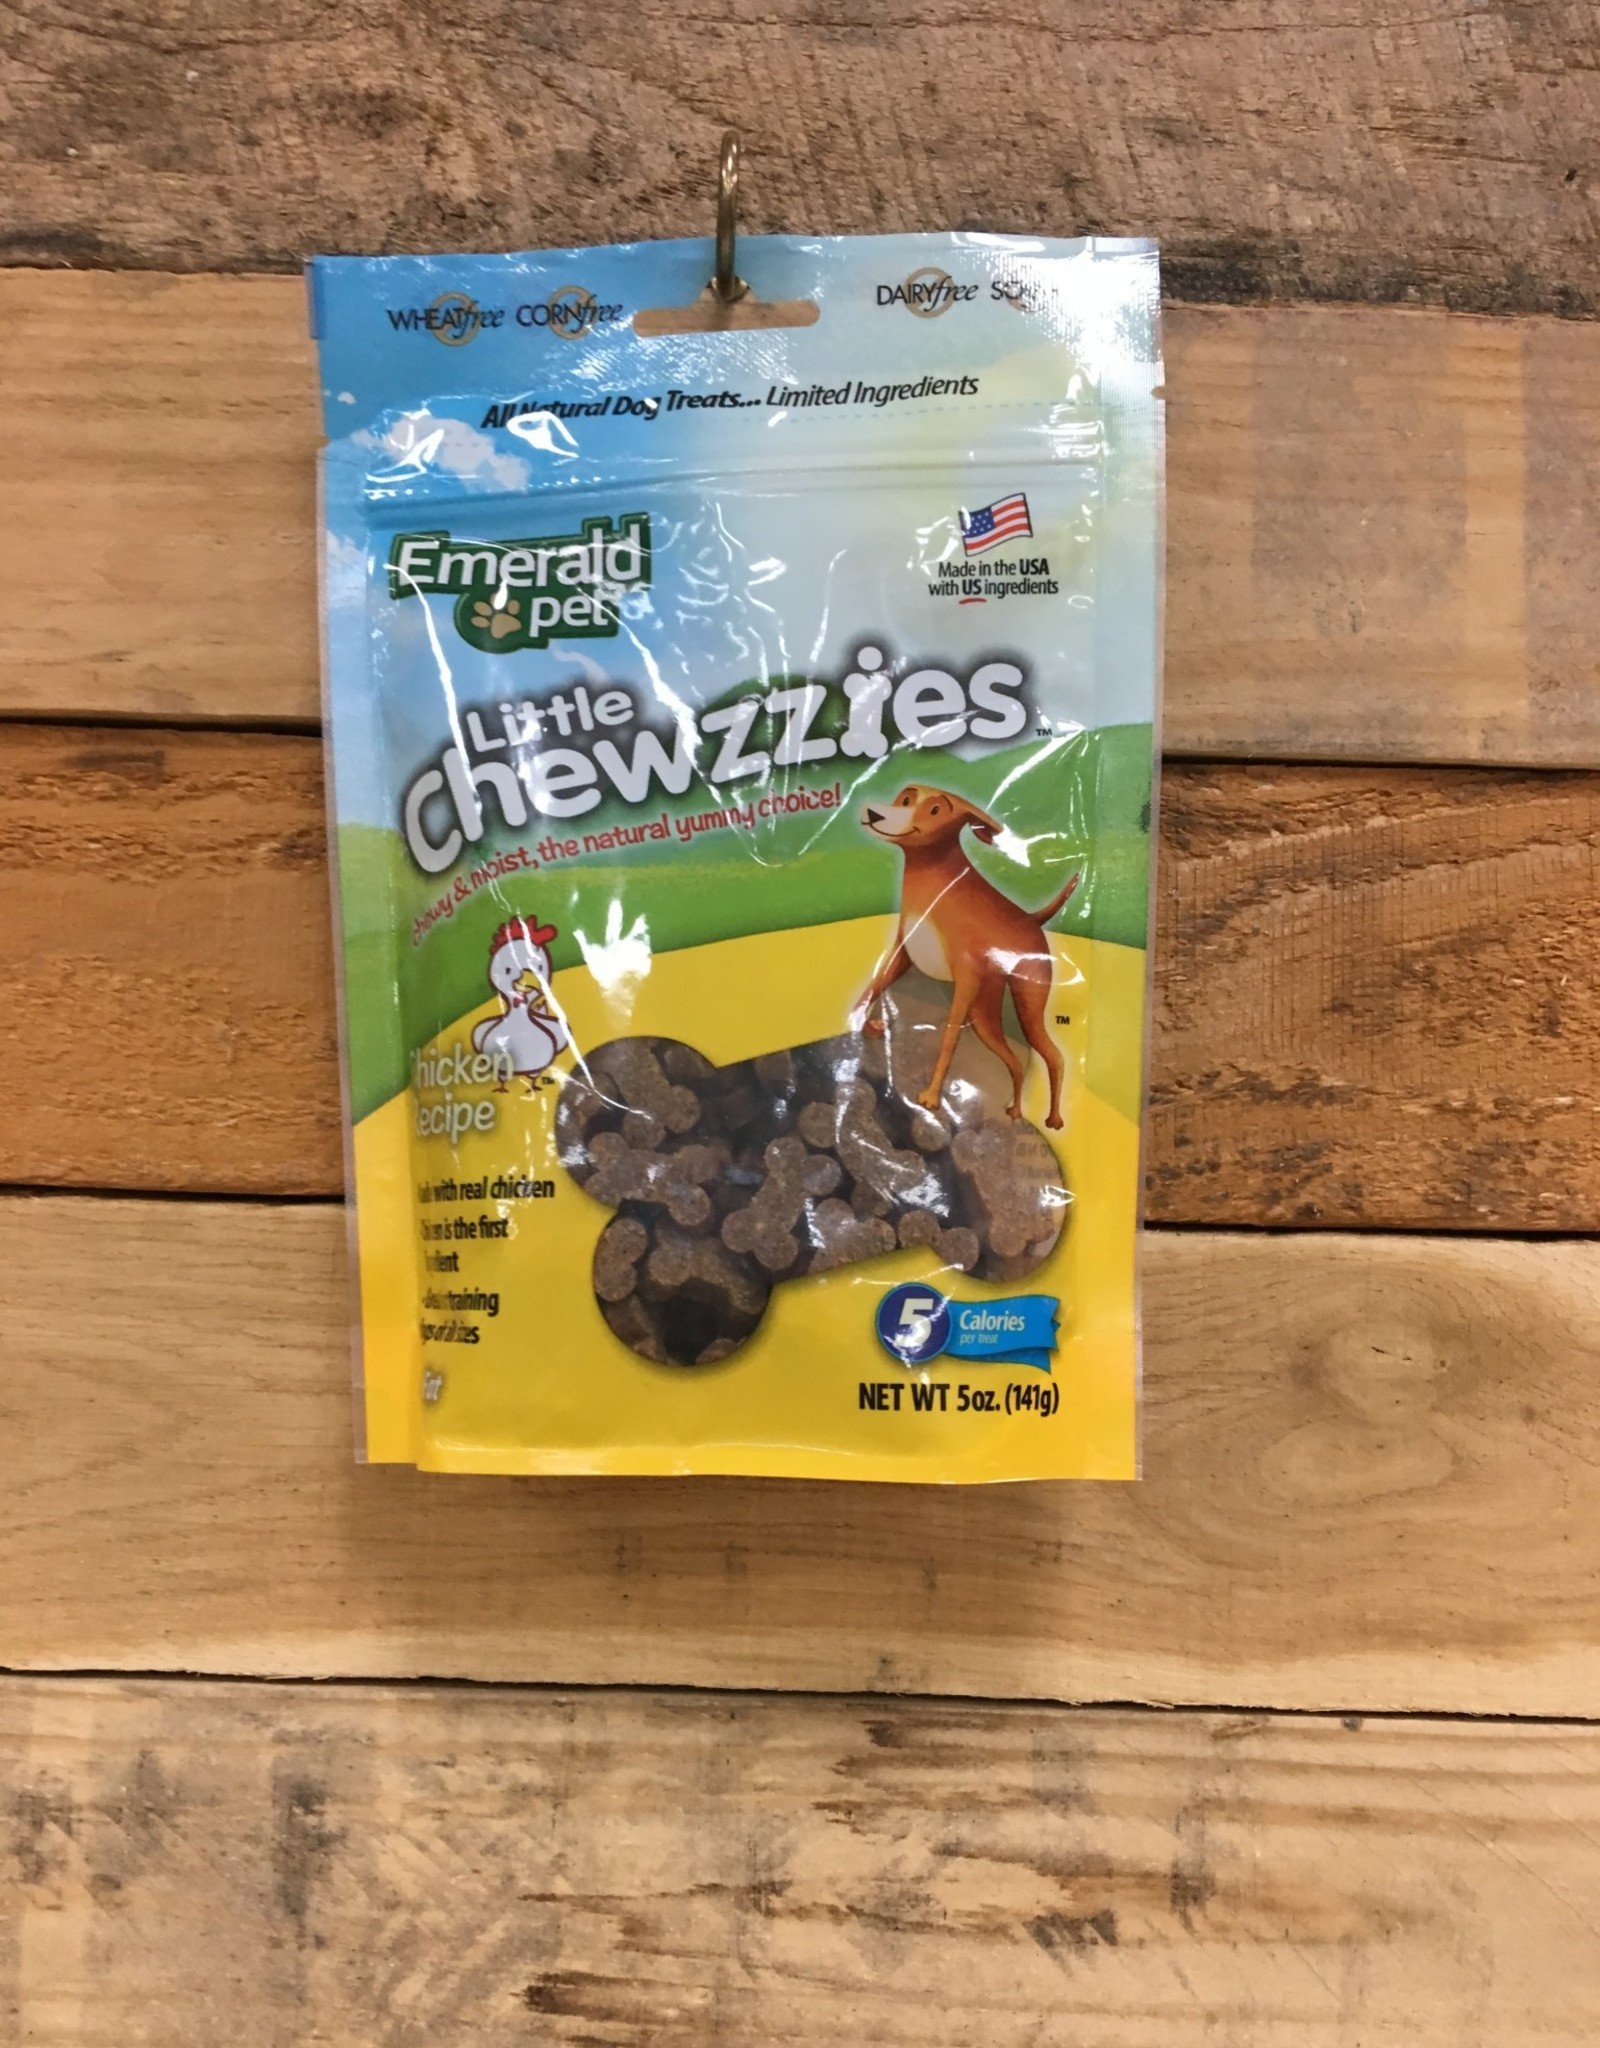 Emerald smart n tasty little chewzzies chicken 5 oz